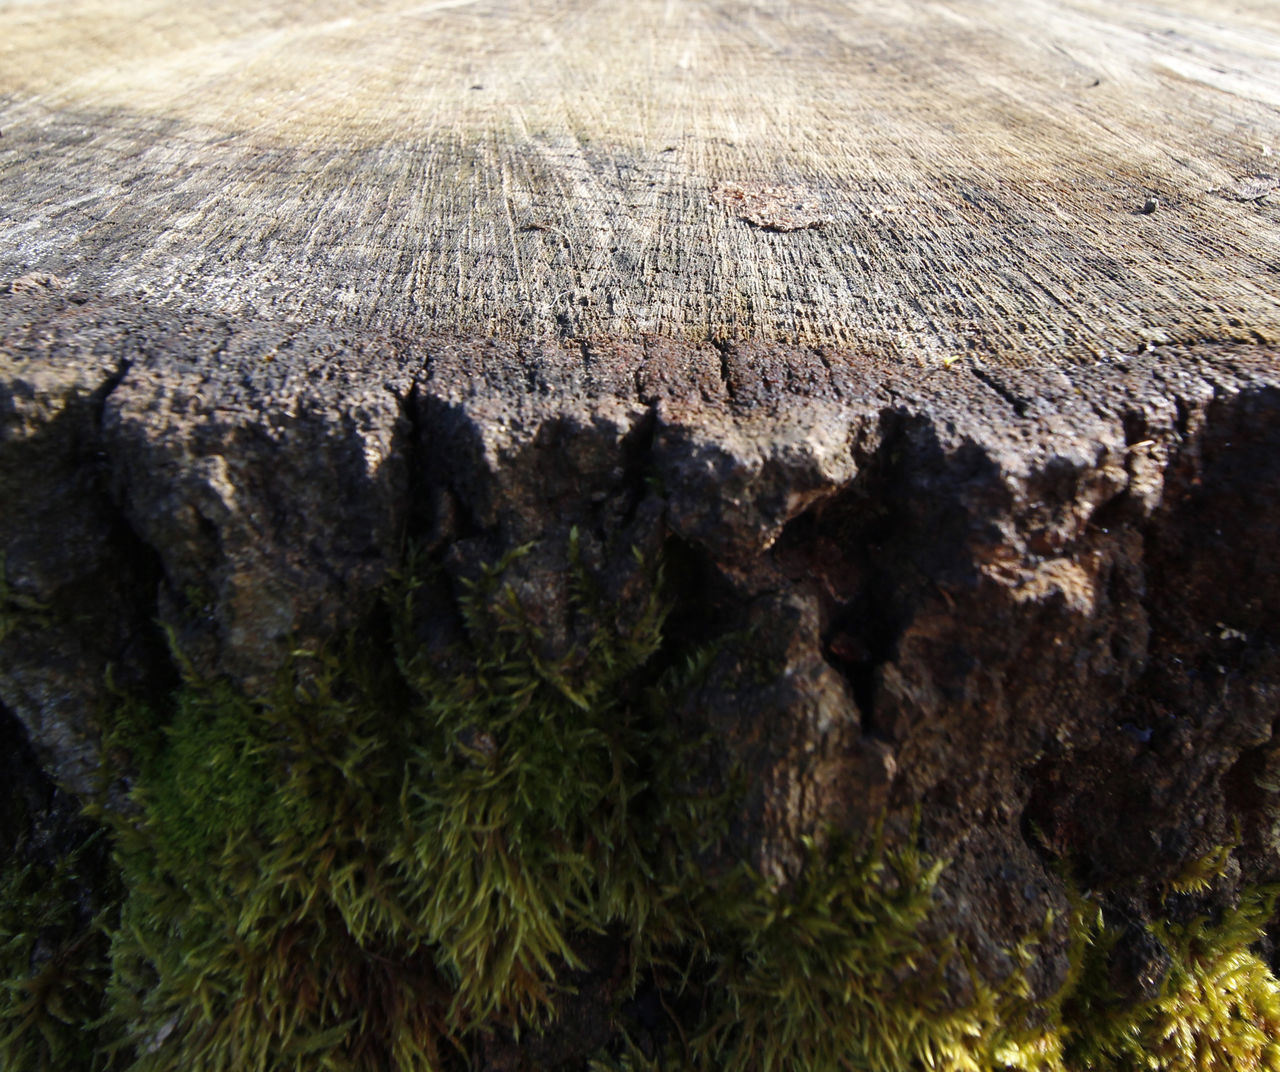 Old tree stump Bark Close-up Day High Angle View Moss Nature No People Outdoors Textured  Tree Tree Stump